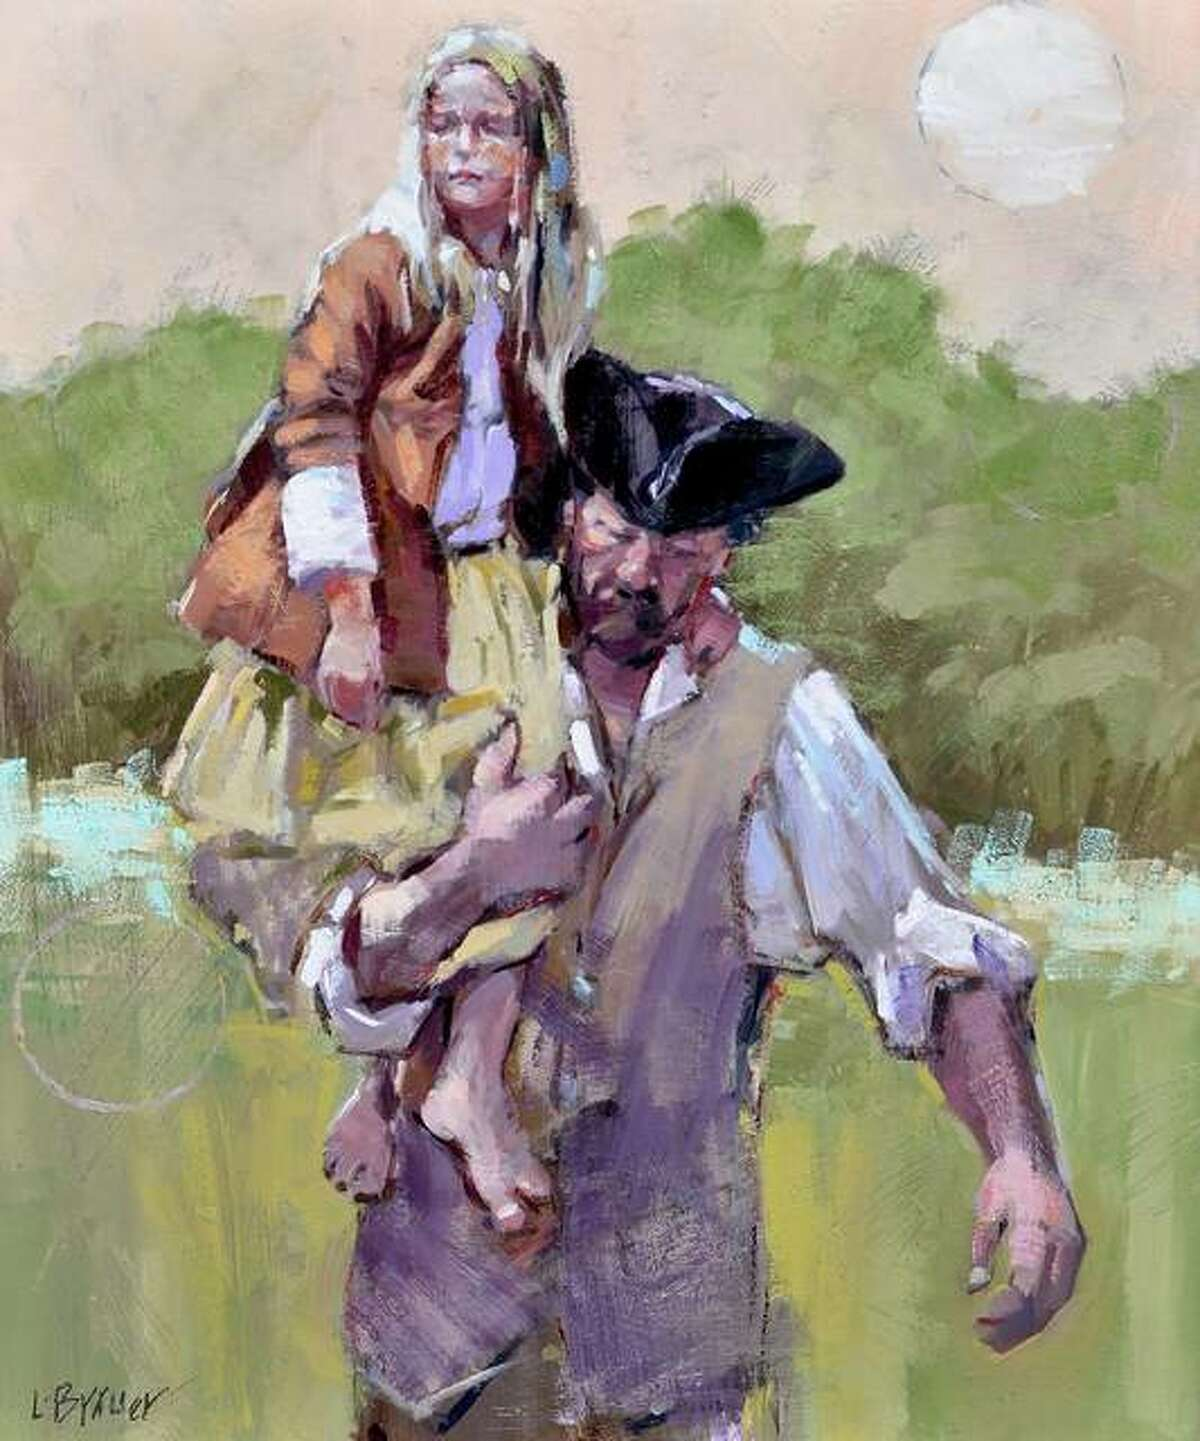 """Visitors can purchase raffle tickets for a chance to win a fine art oil painting, """"Scout,"""" valued at $3,200, painted by local re-enactor and fine art painter Lon Brauer. Tickets cost $10 each or three for $25. The winner will be announced at the closing ceremony at 5 p.m. June 6 and ticket holders need not be present to win. All proceeds beyond the cost of the event will be donated to Camp Dubois."""